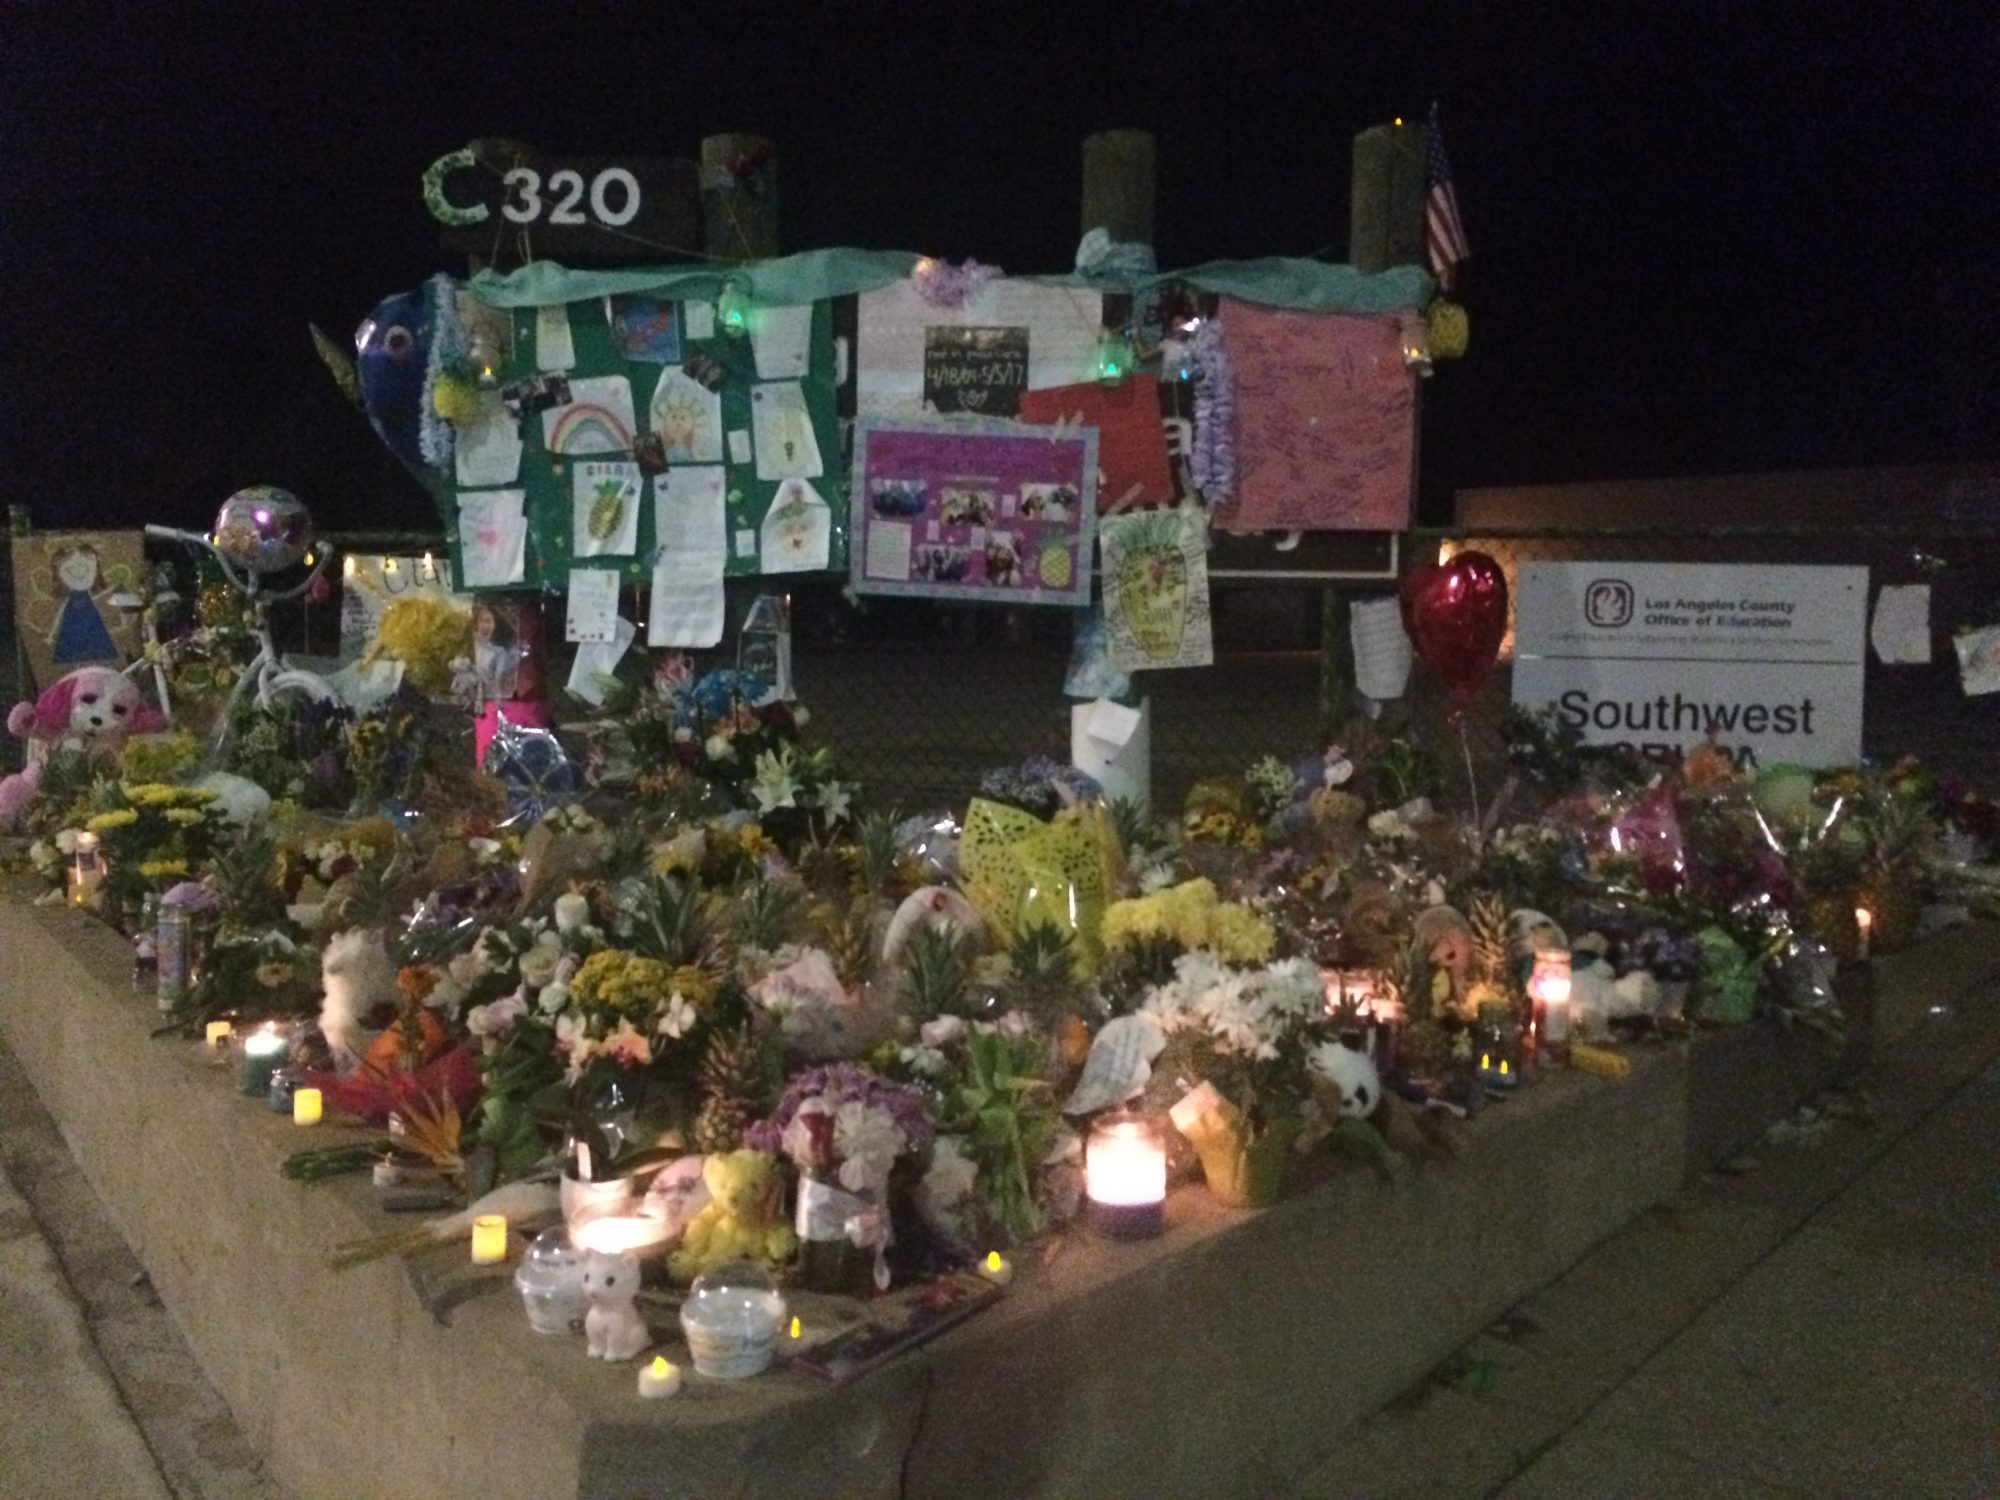 A highway tragedy: A 13-year-old girl is killed on PCH, and